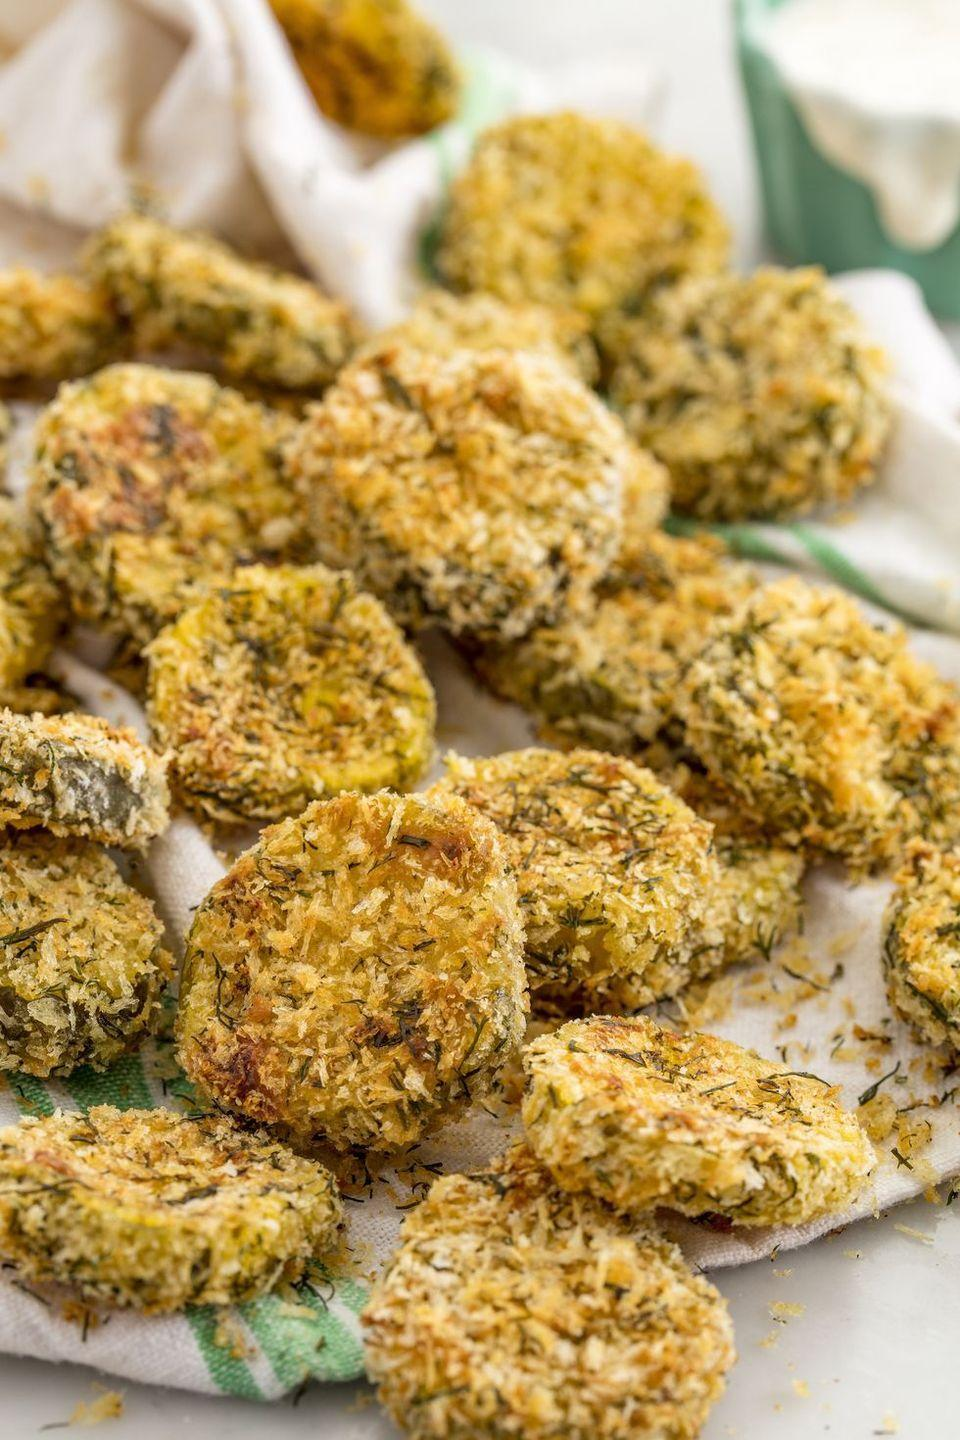 """<p>Take your love for pickles to a whole new level with these oven-fried beauties.</p><p><em><a href=""""https://www.delish.com/cooking/recipe-ideas/recipes/a53332/oven-fried-pickles-recipe/"""" rel=""""nofollow noopener"""" target=""""_blank"""" data-ylk=""""slk:Get the recipe from Delish »"""" class=""""link rapid-noclick-resp"""">Get the recipe from Delish »</a></em></p>"""